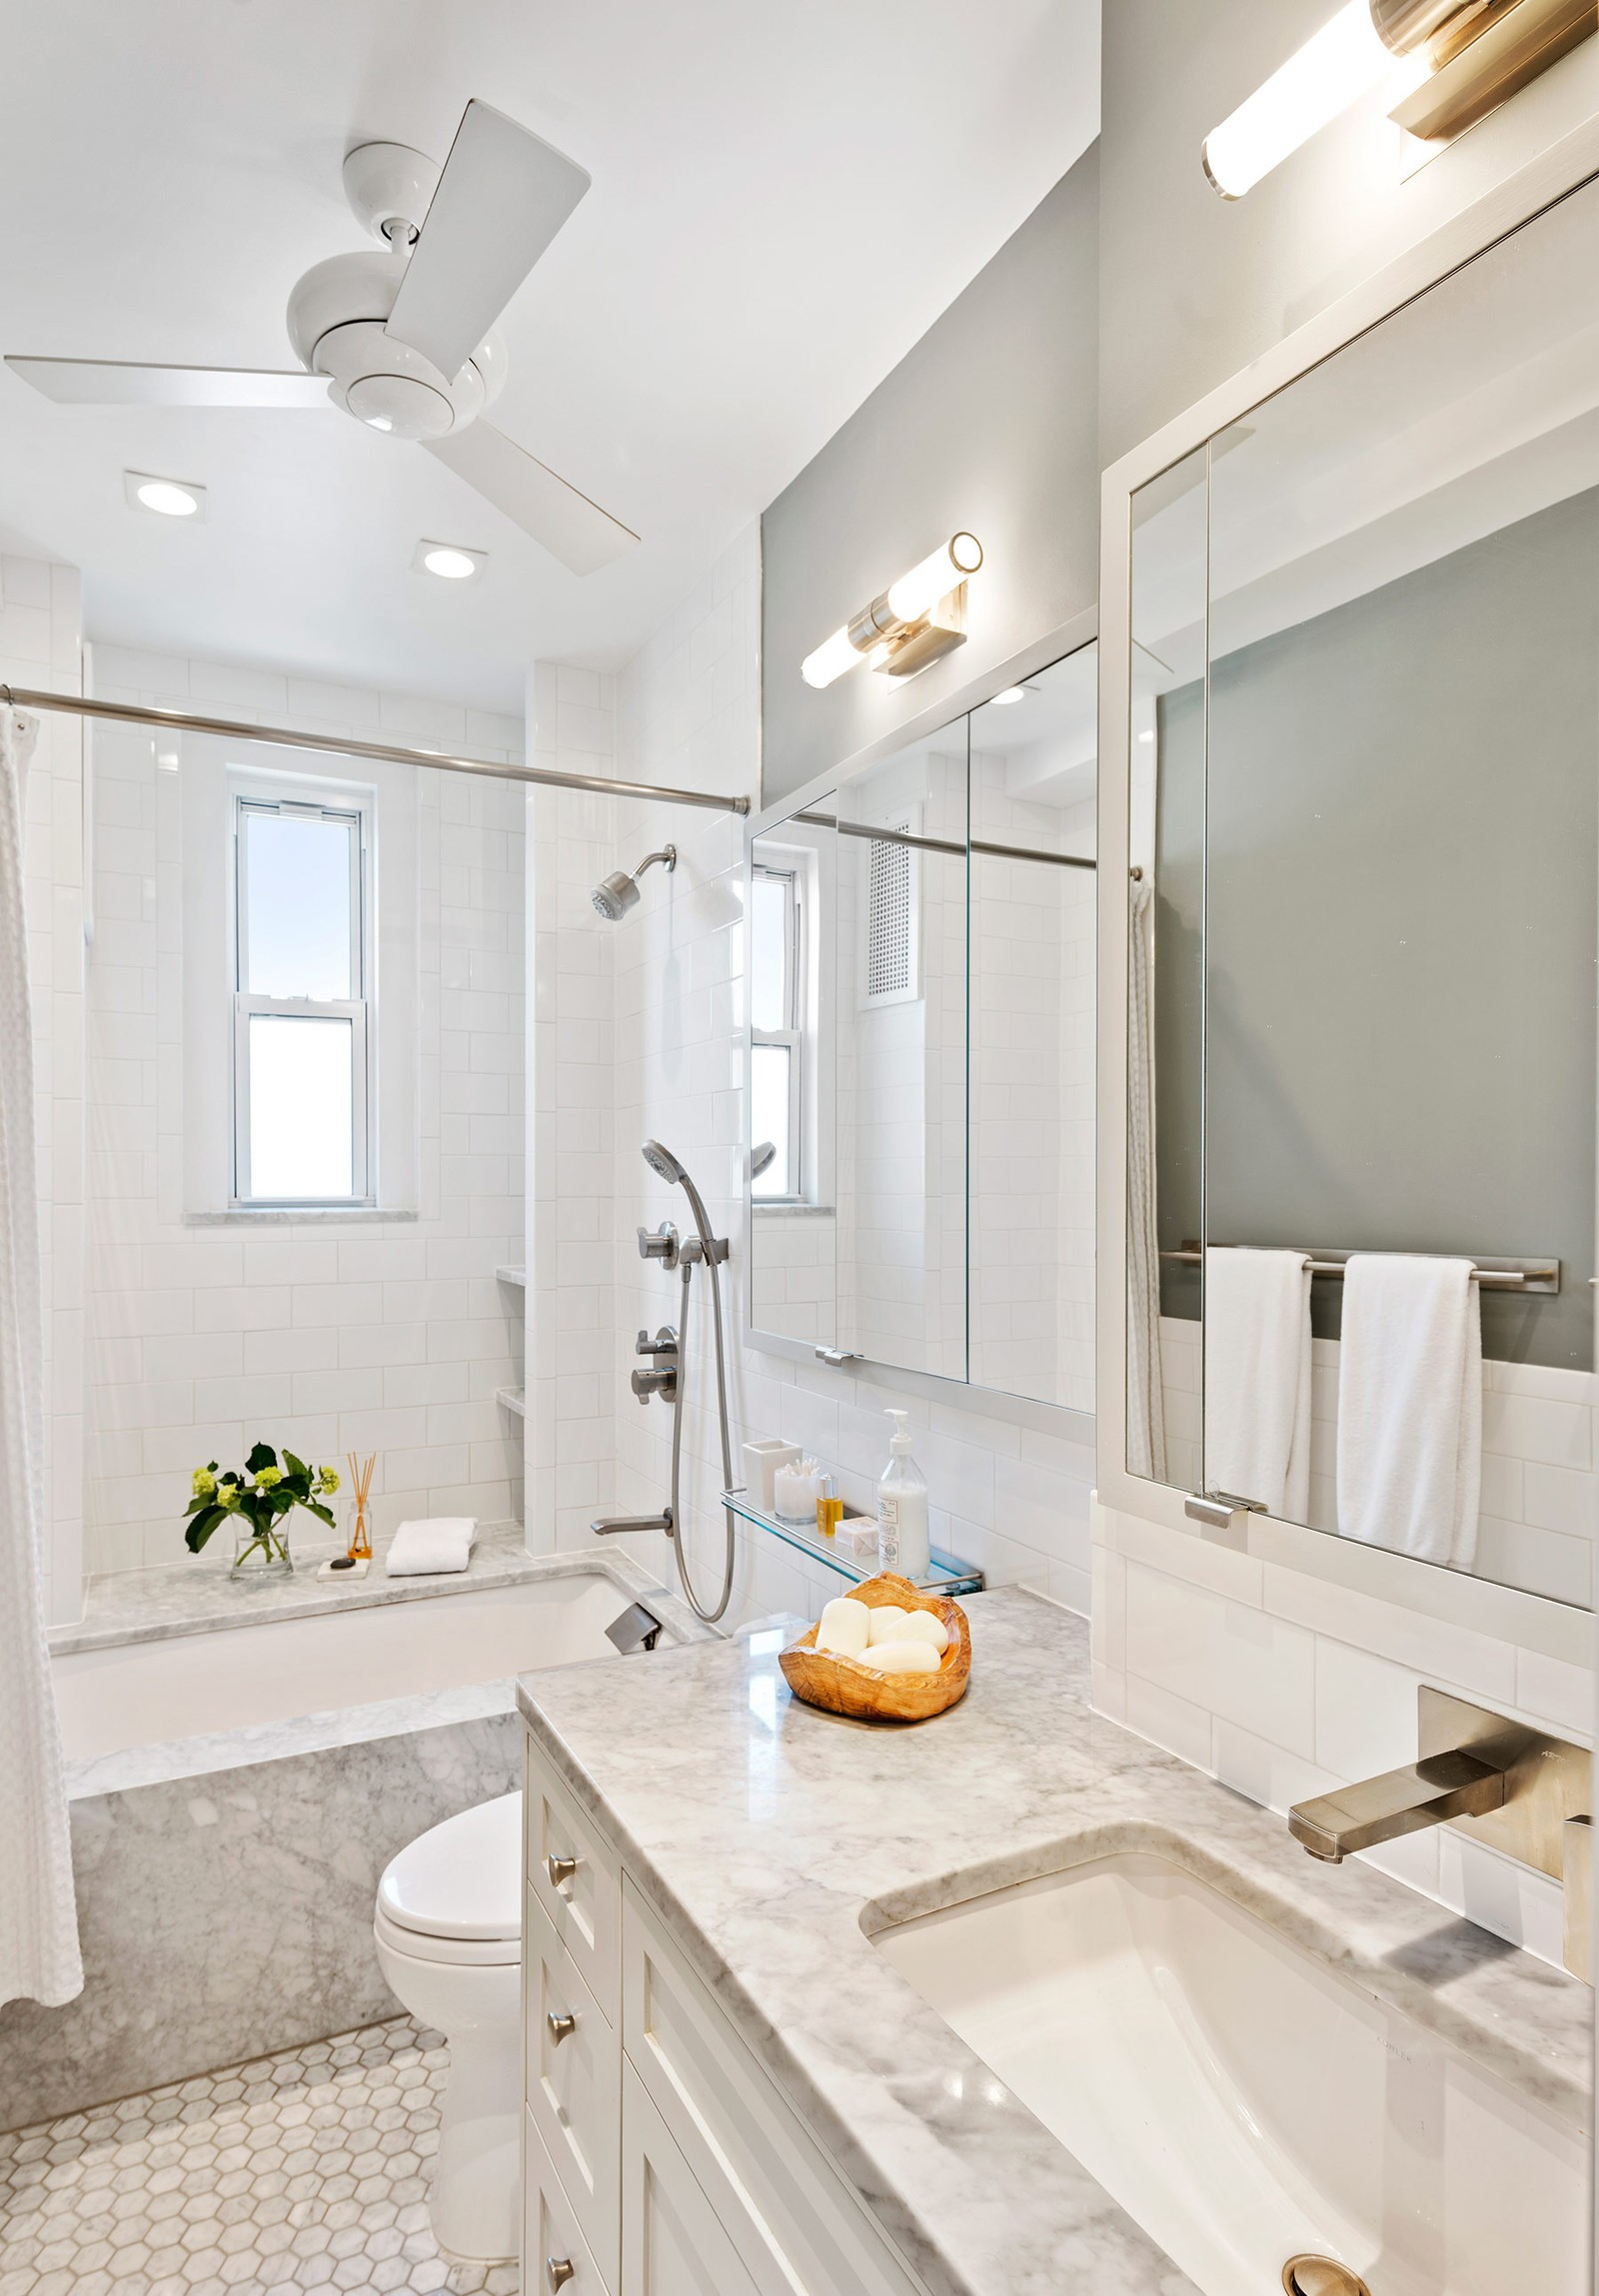 white and marble bathroom with tub, shower and ceiling fan 2.3x